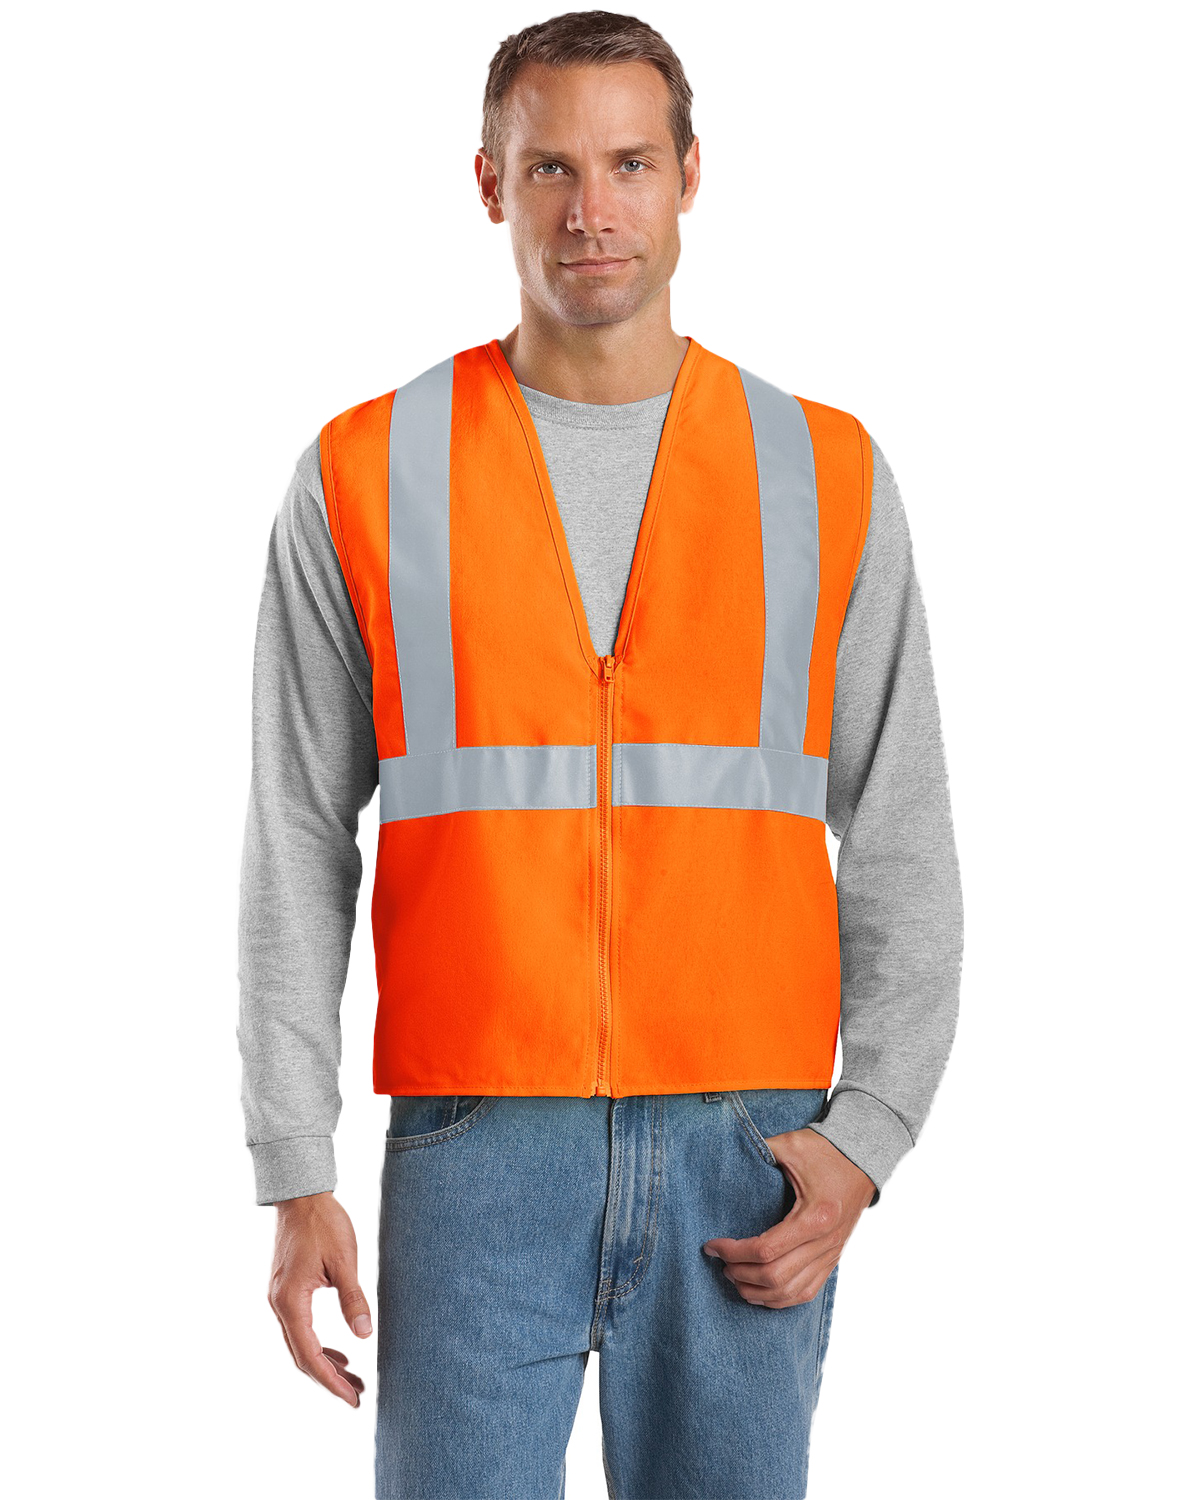 High Visibility Safetly Clothing At Wholesale Price